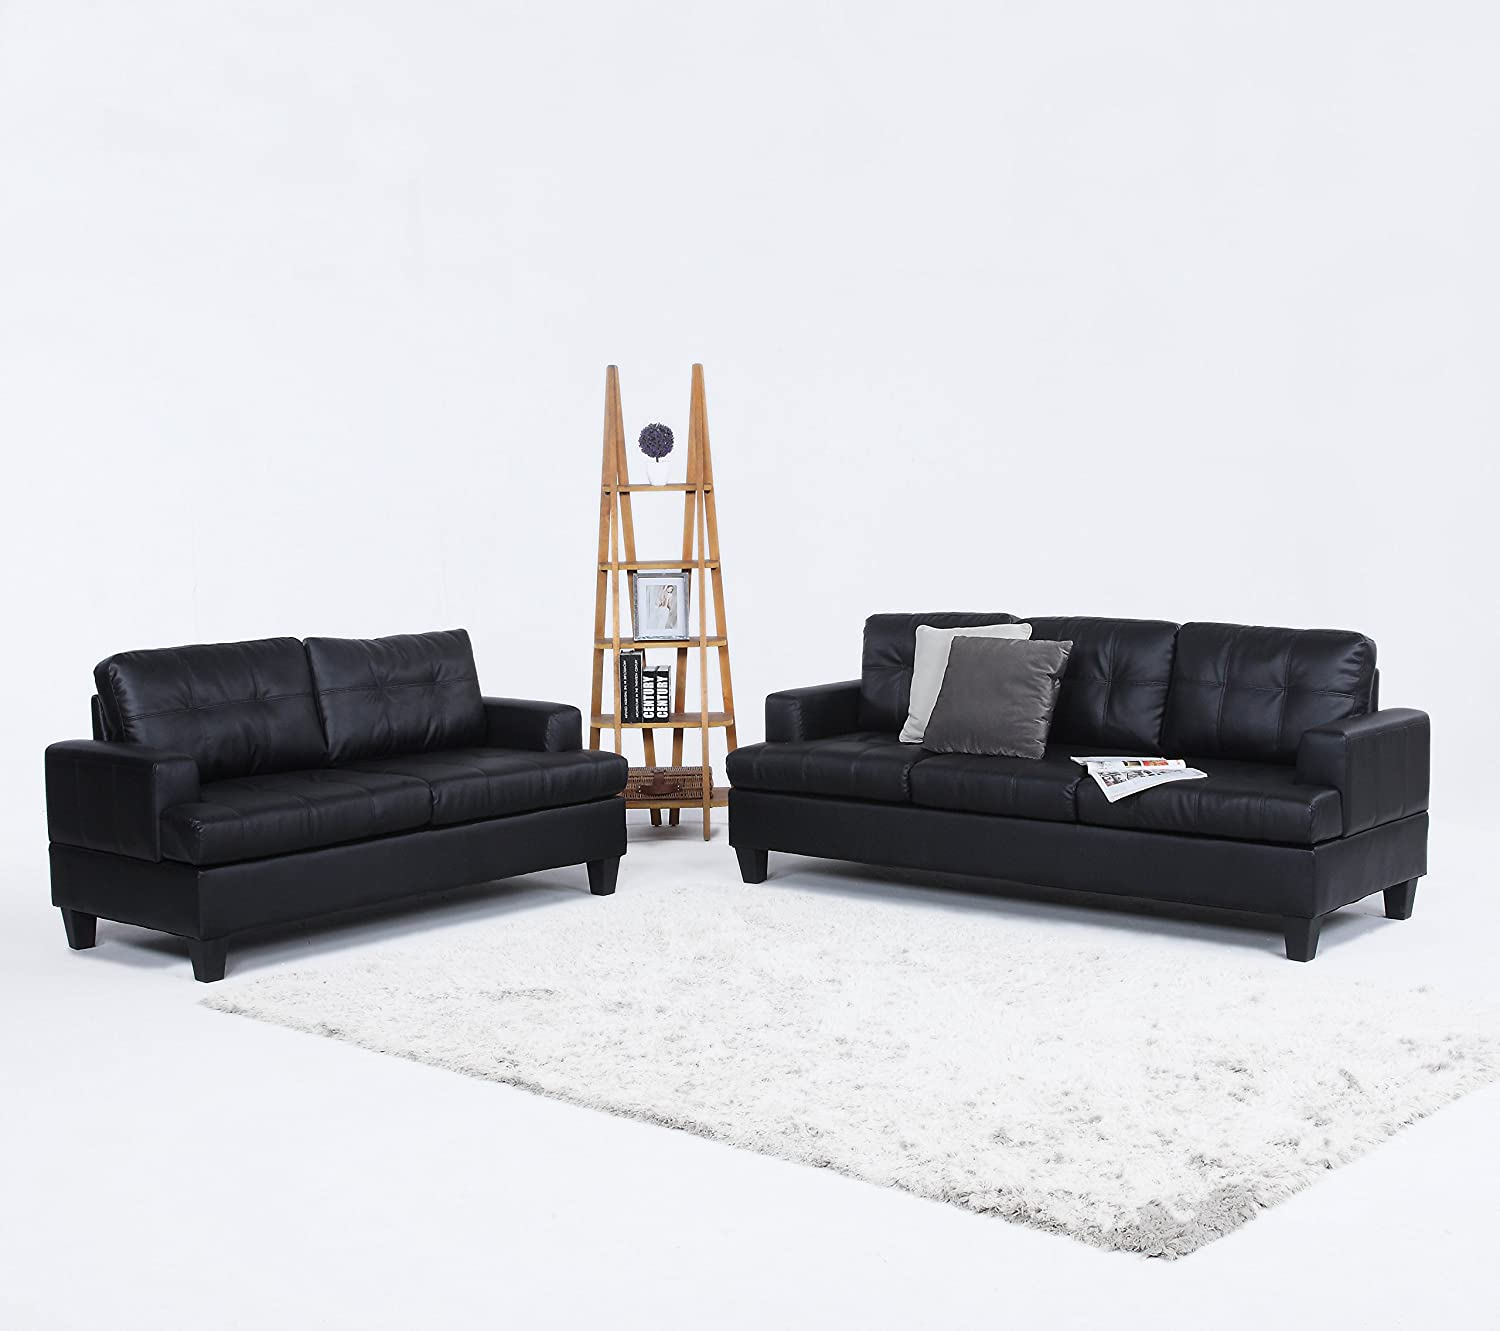 amazoncom  piece modern black bonded leather sofa and love seat setkitchen  dining. amazoncom  piece modern black bonded leather sofa and love seat